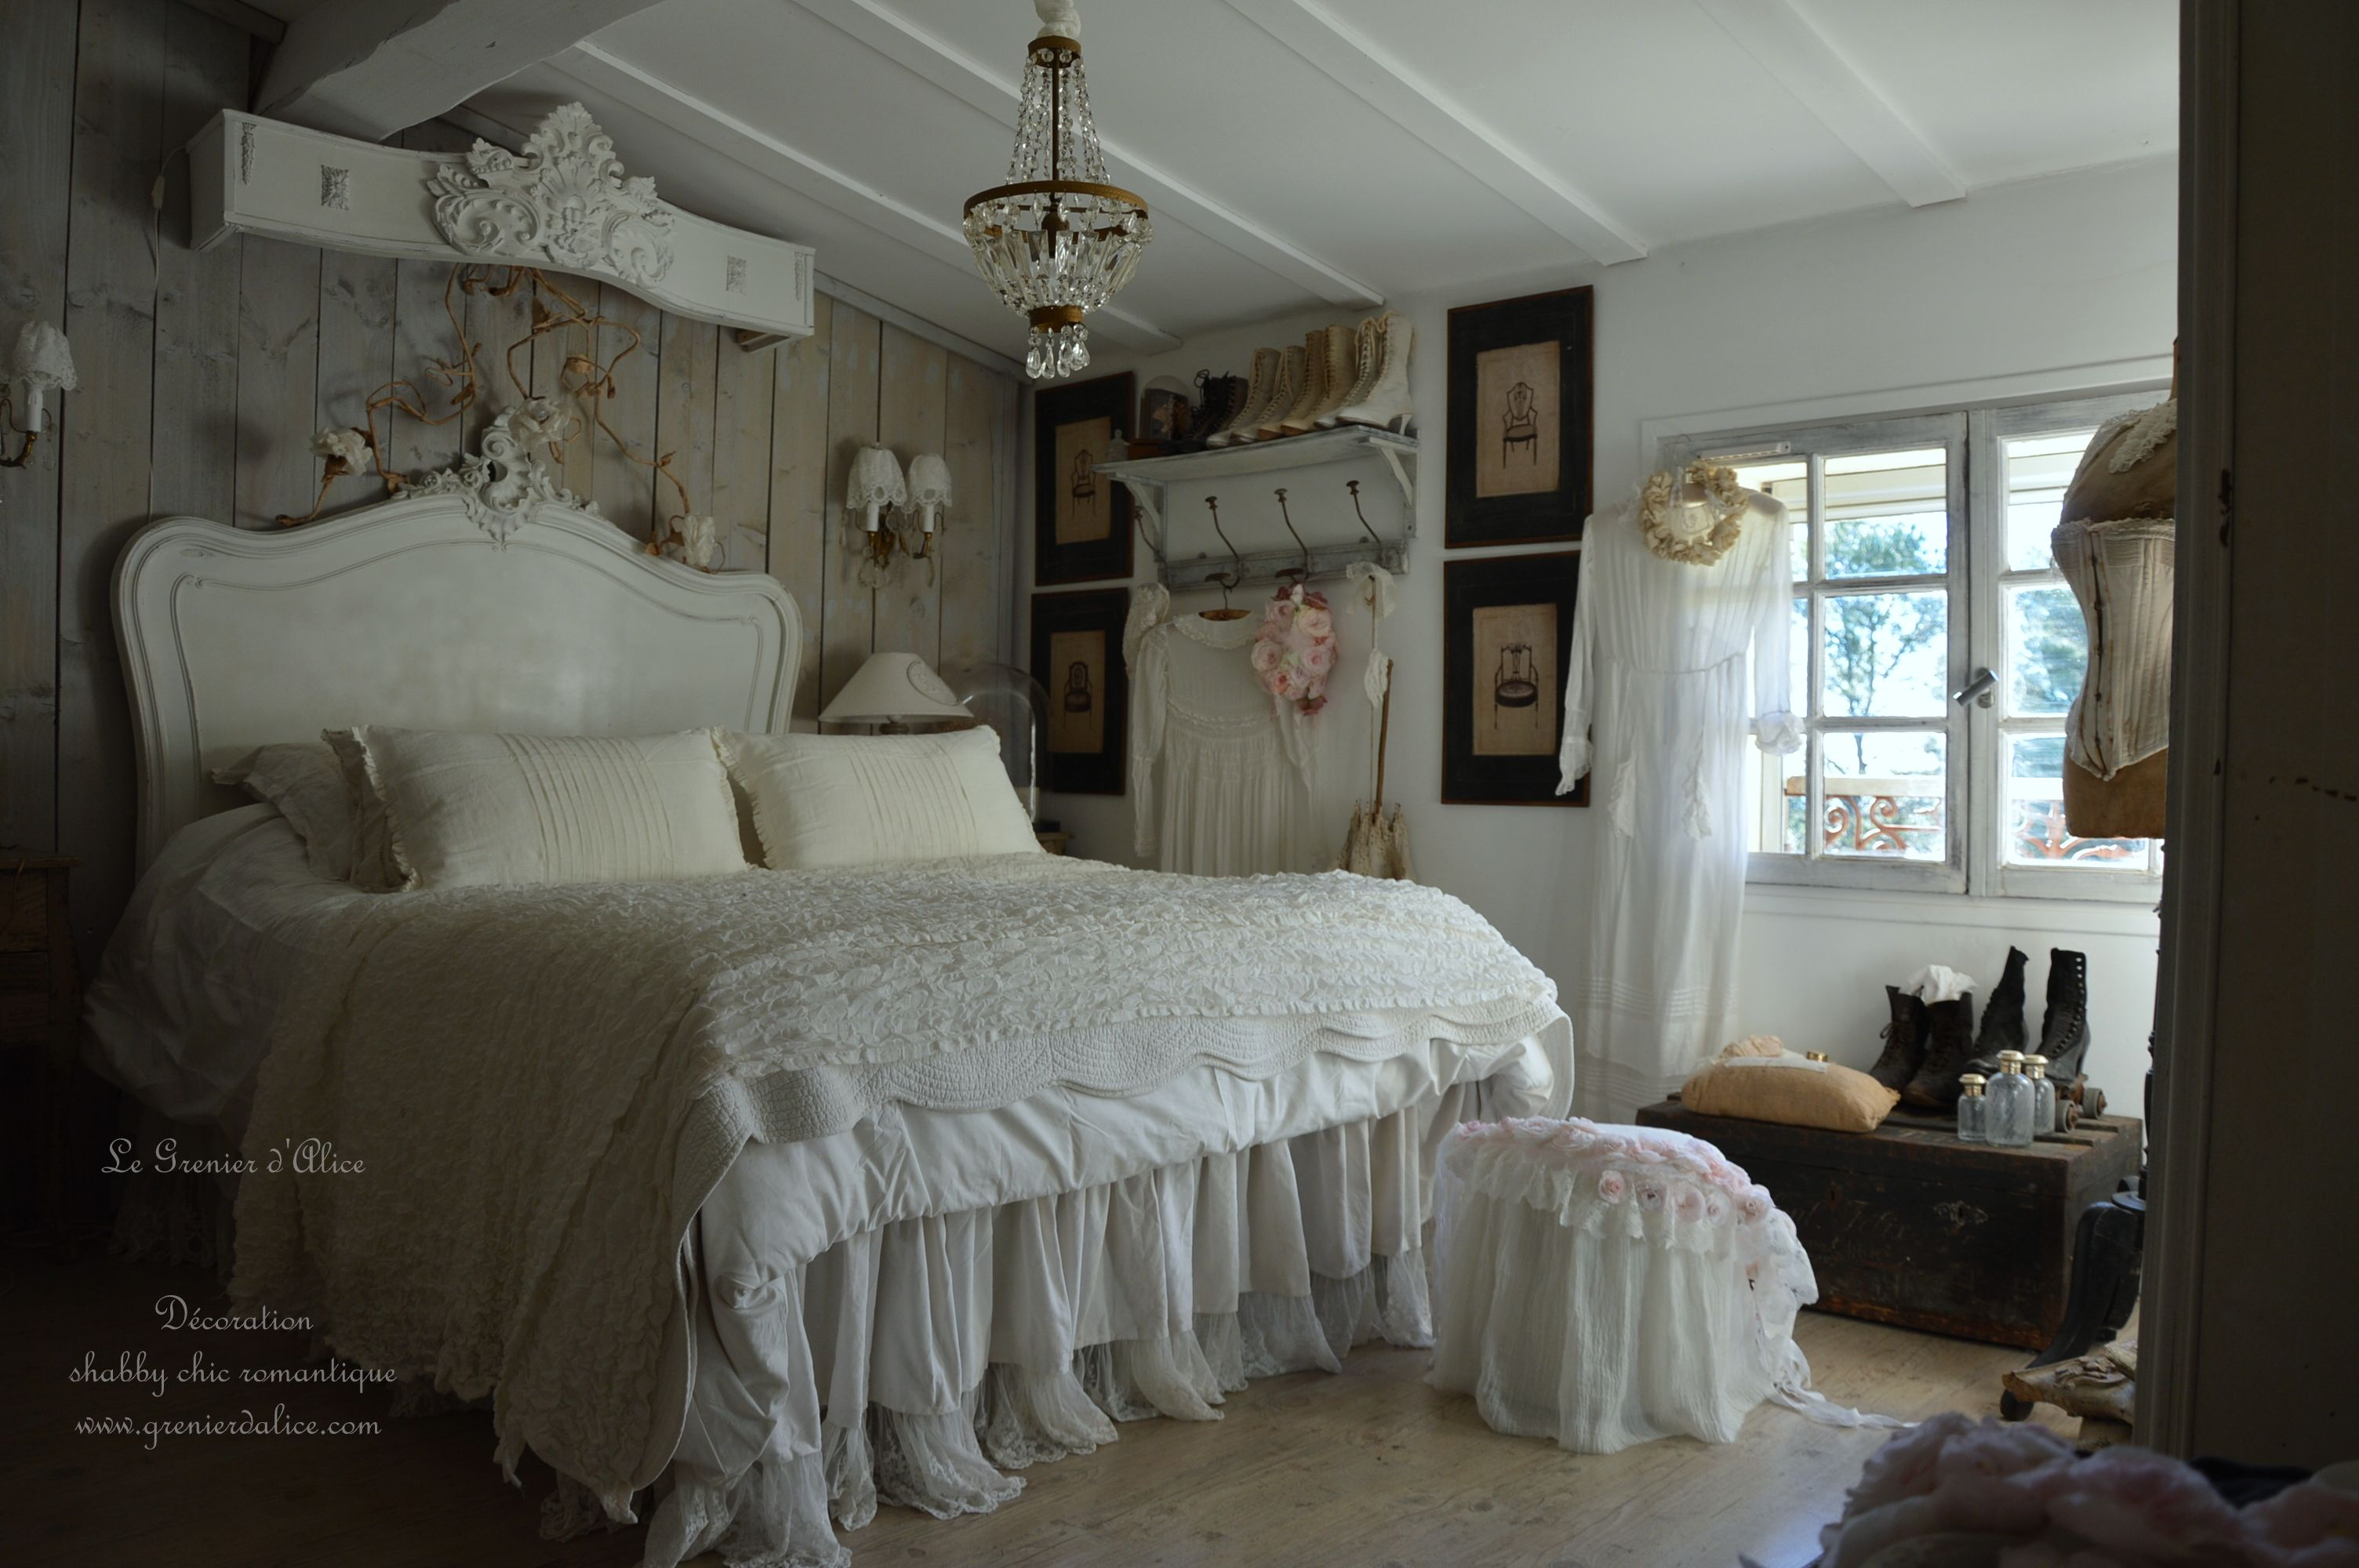 chambre romantique shabby chic nordique chambre de charme. Black Bedroom Furniture Sets. Home Design Ideas